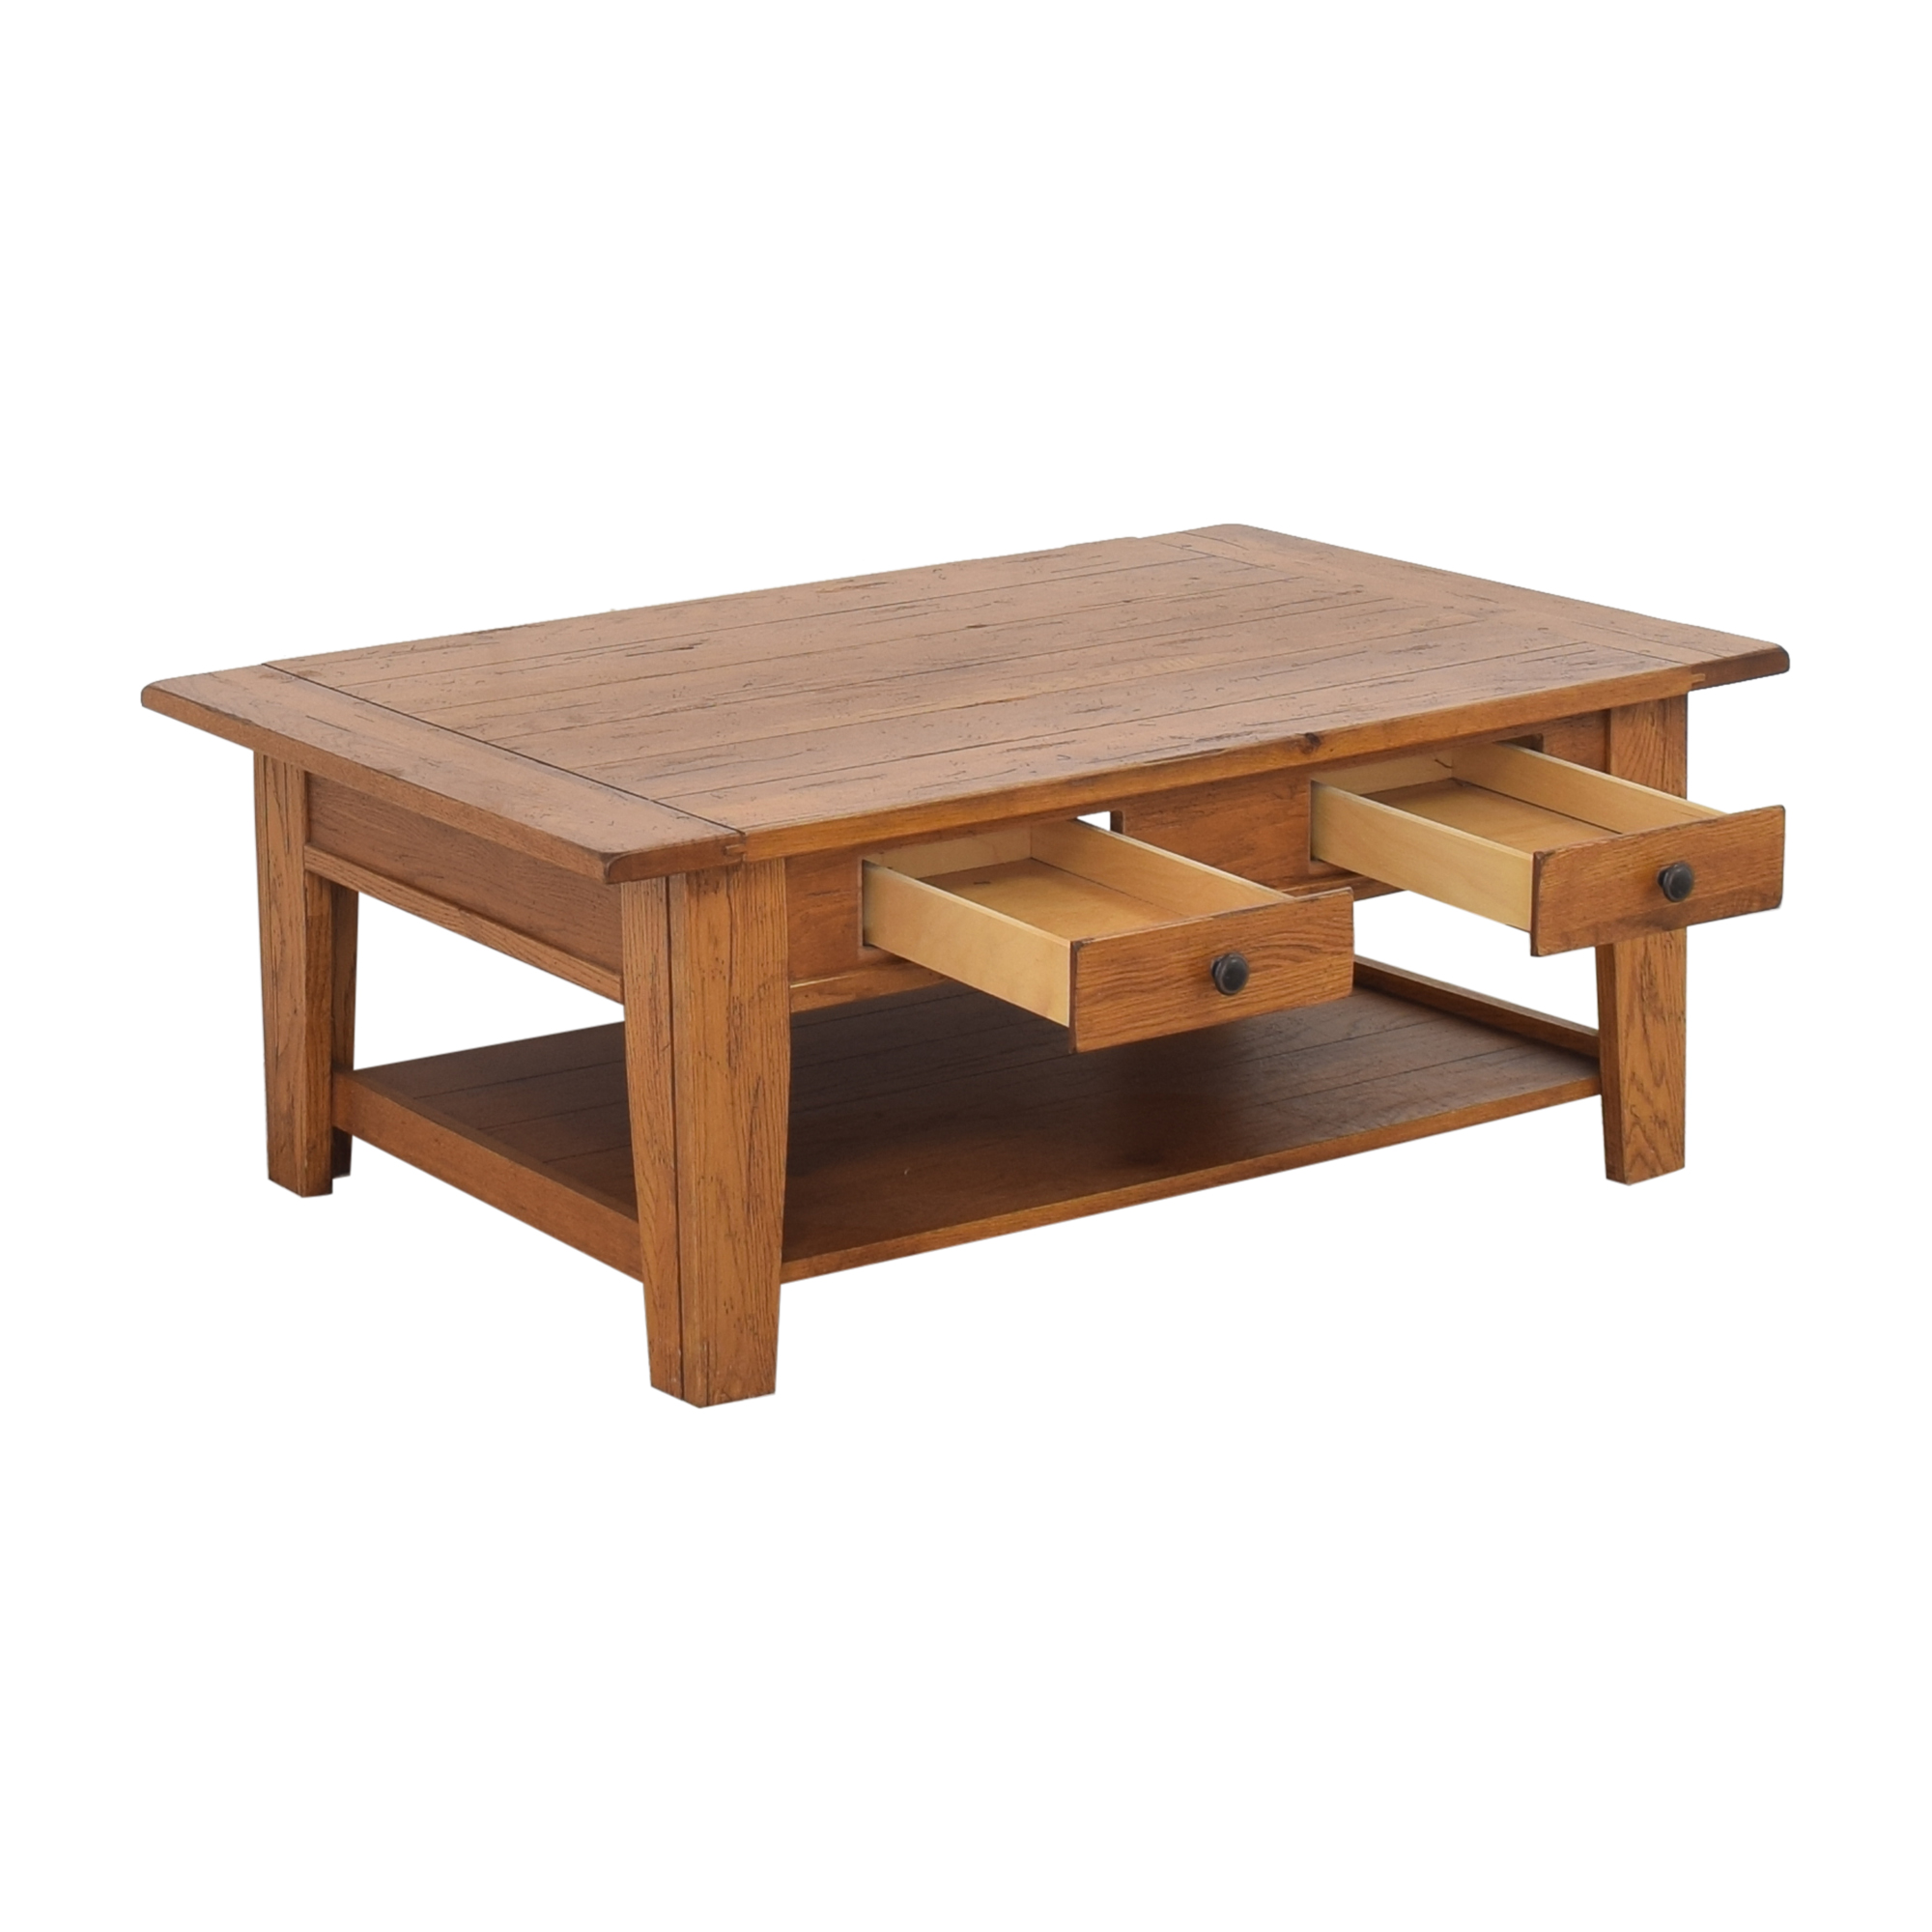 Broyhill Furniture Attic Heirlooms Cocktail Table sale